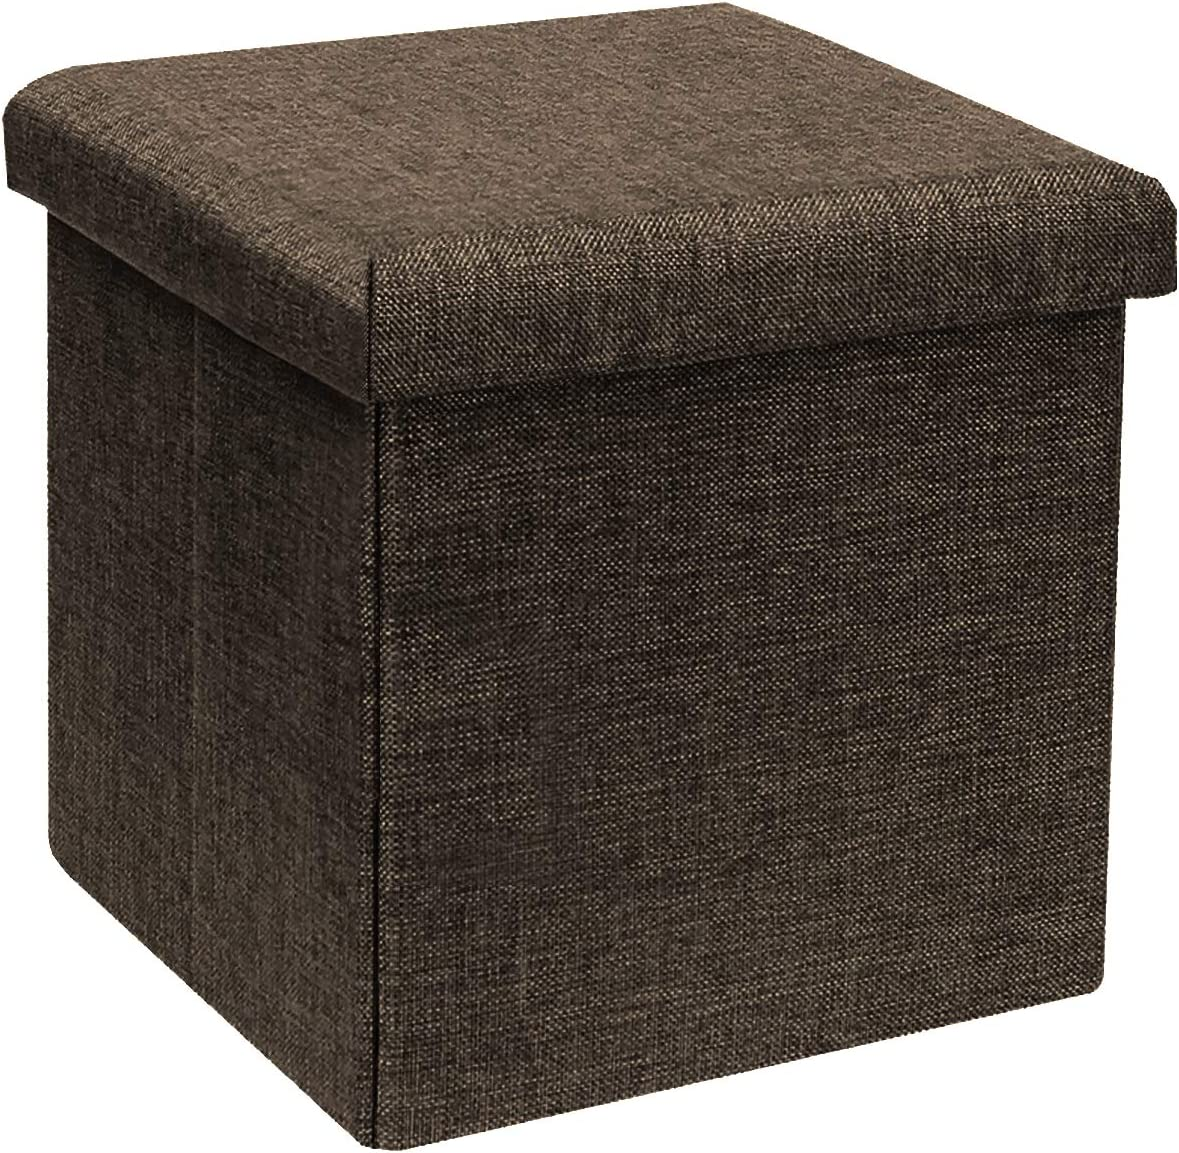 "B FSOBEIIALEO Storage Ottoman Cube, Linen Small Coffee Table, Foot Rest Stool Seat, Folding Toys Chest Collapsible for Kids Brown 11.8""x11.8""x11.8"""